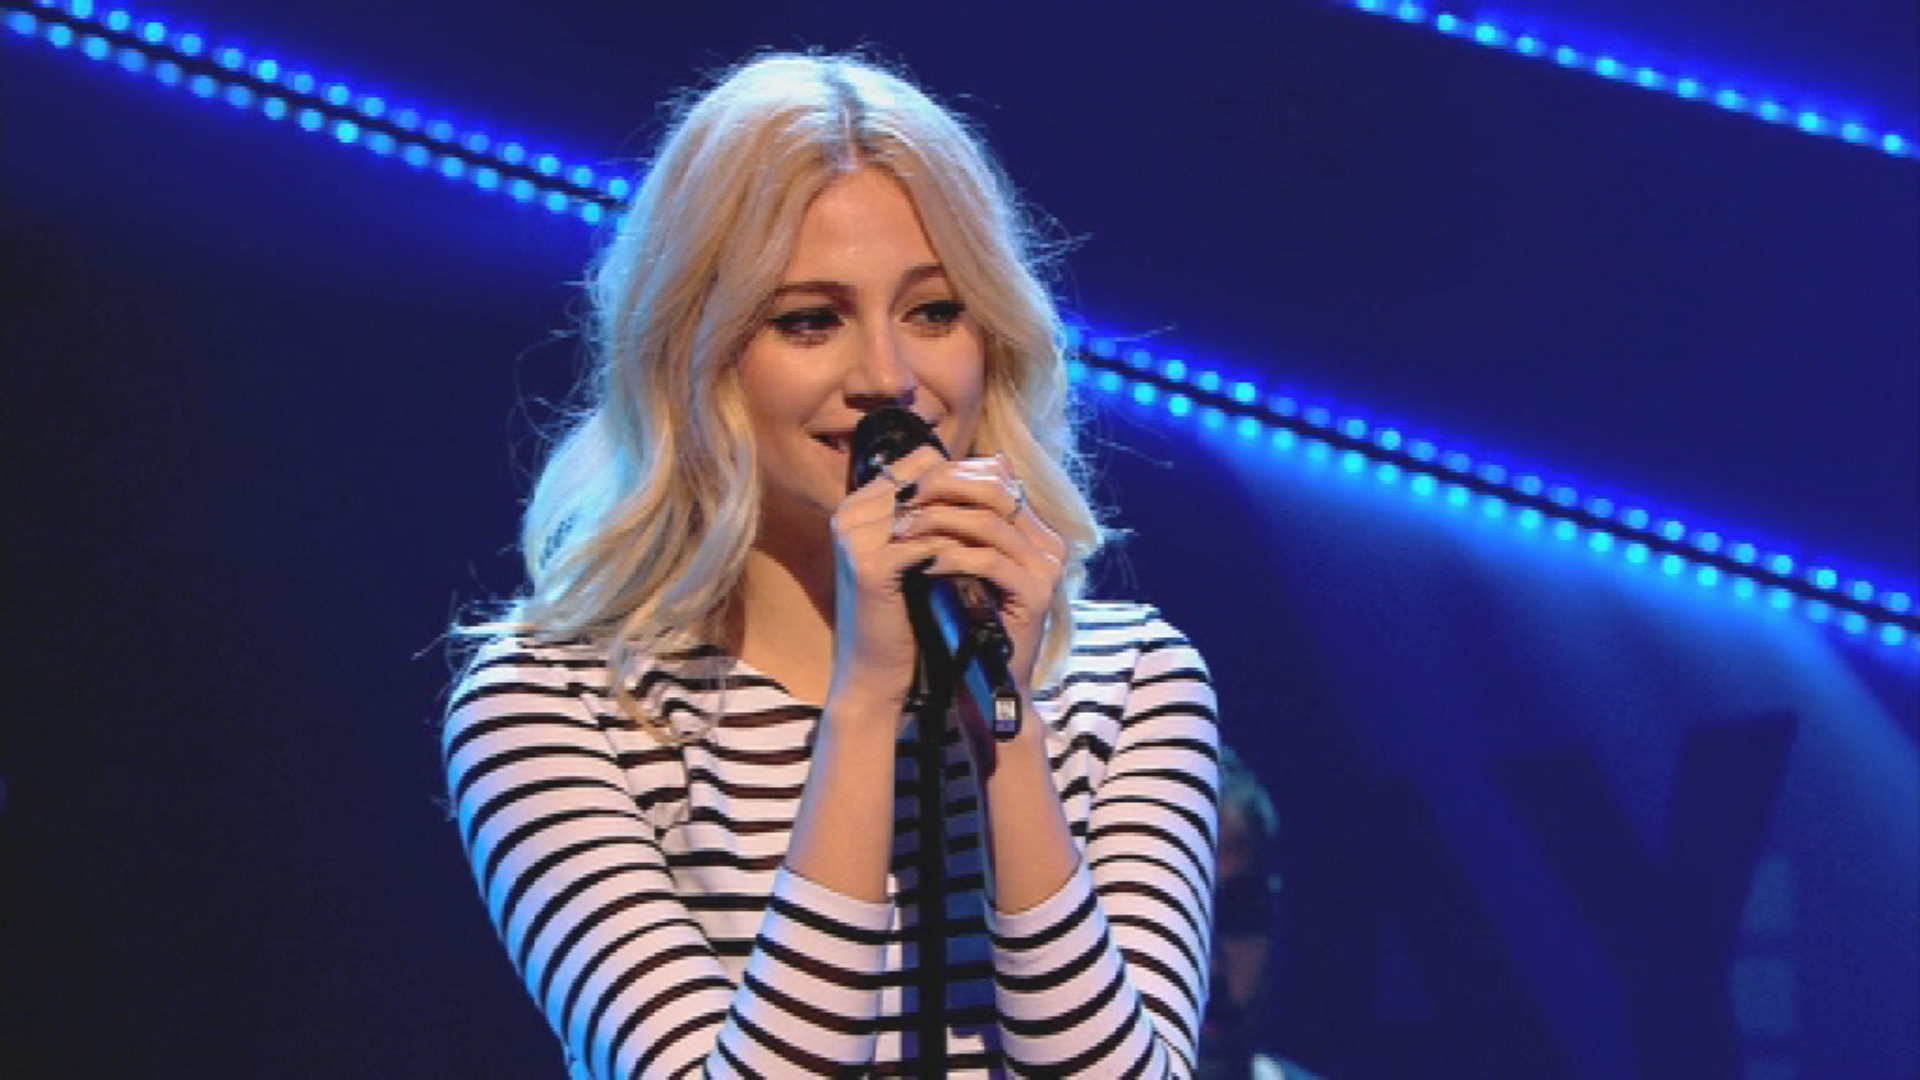 Pixie Lott performing on Friday Download.